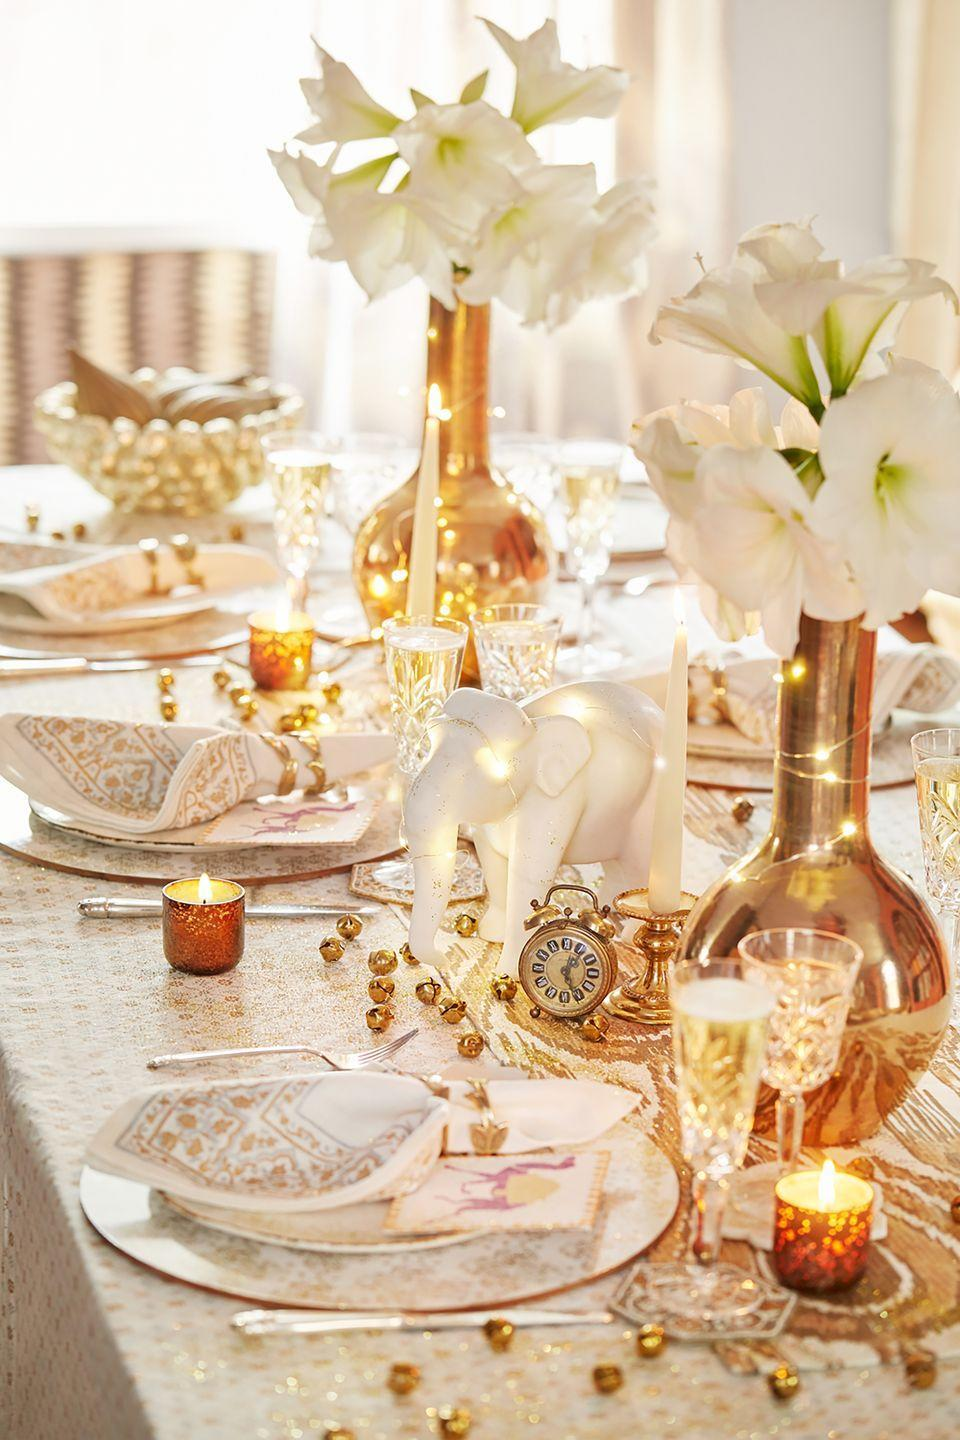 """<p>""""I like to incorporate quirky elements from my trips to create a fun table setting. I found these great porcelain elephants and a cool vintage clock on a recent trip to India. I also saw these tiny bells, which we scattered throughout the table to make it more festive."""" <em>—<a href=""""https://johnrobshaw.com/"""" rel=""""nofollow noopener"""" target=""""_blank"""" data-ylk=""""slk:John Robshaw"""" class=""""link rapid-noclick-resp"""">John Robshaw</a>, Textile Designer</em></p>"""